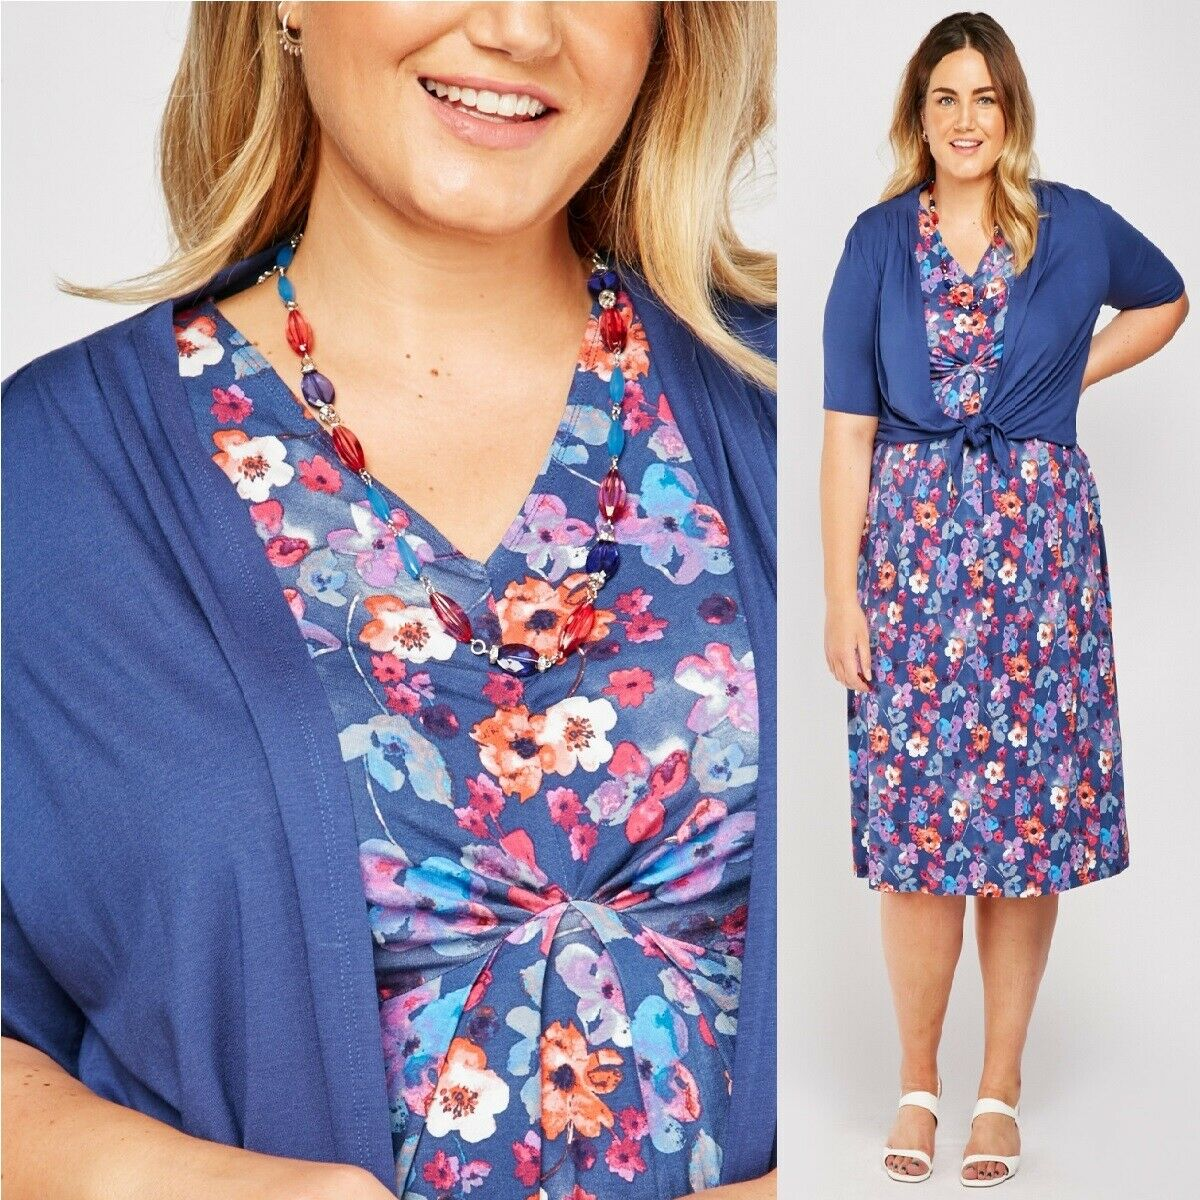 NEW EWM Mother of the Bride Outfit Size 16 Blue Floral Dress Shrug Necklace